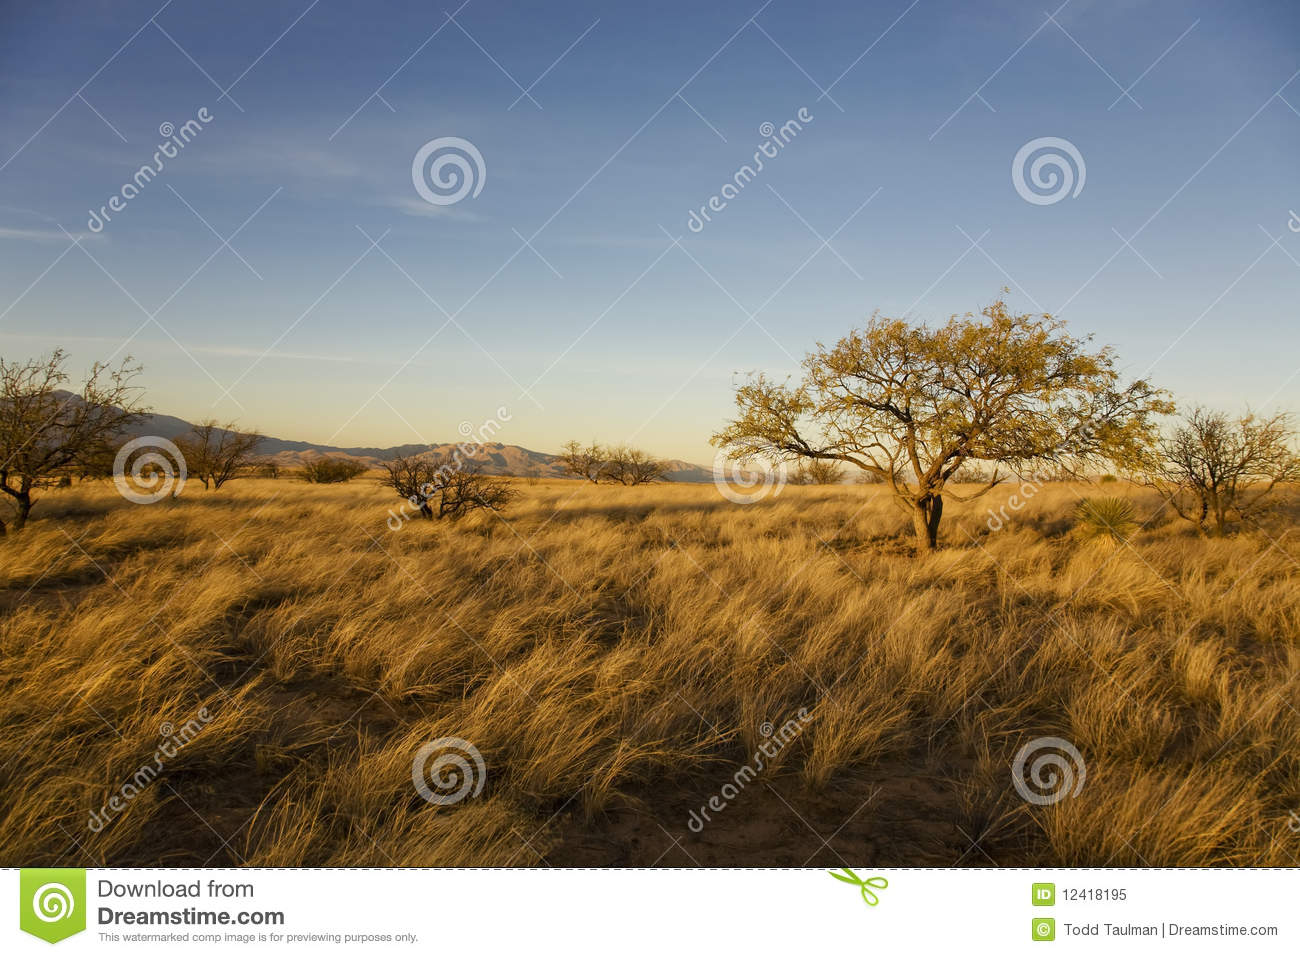 Desert plain royalty free stock photo image 12418195 for Abstract salon tucson